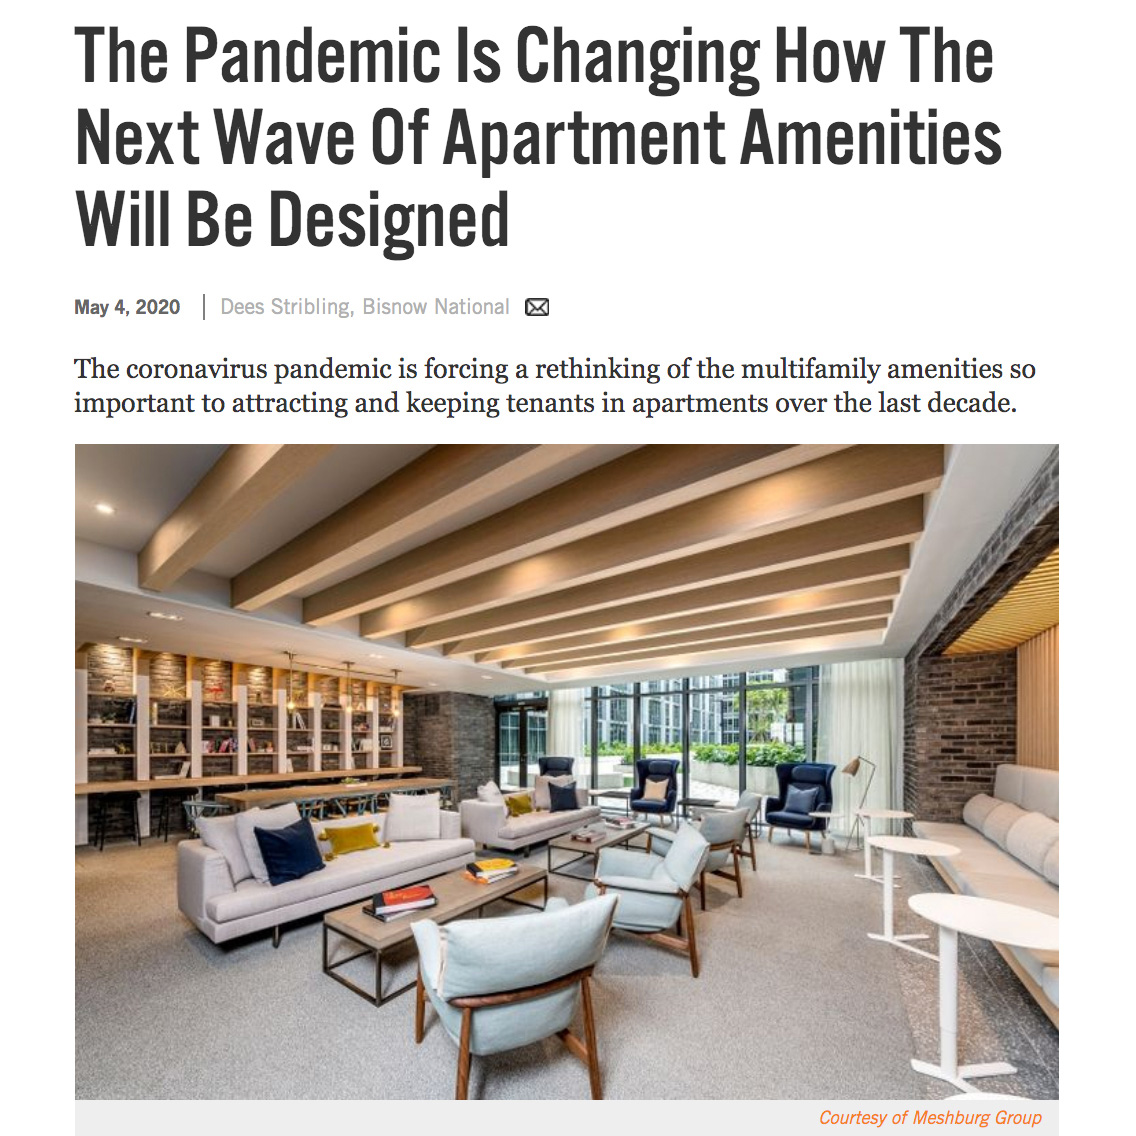 Meshberg Group: The Pandemic Is Changing How The Next Wave Of Apartment Amenities Will Be Designed Bisnow